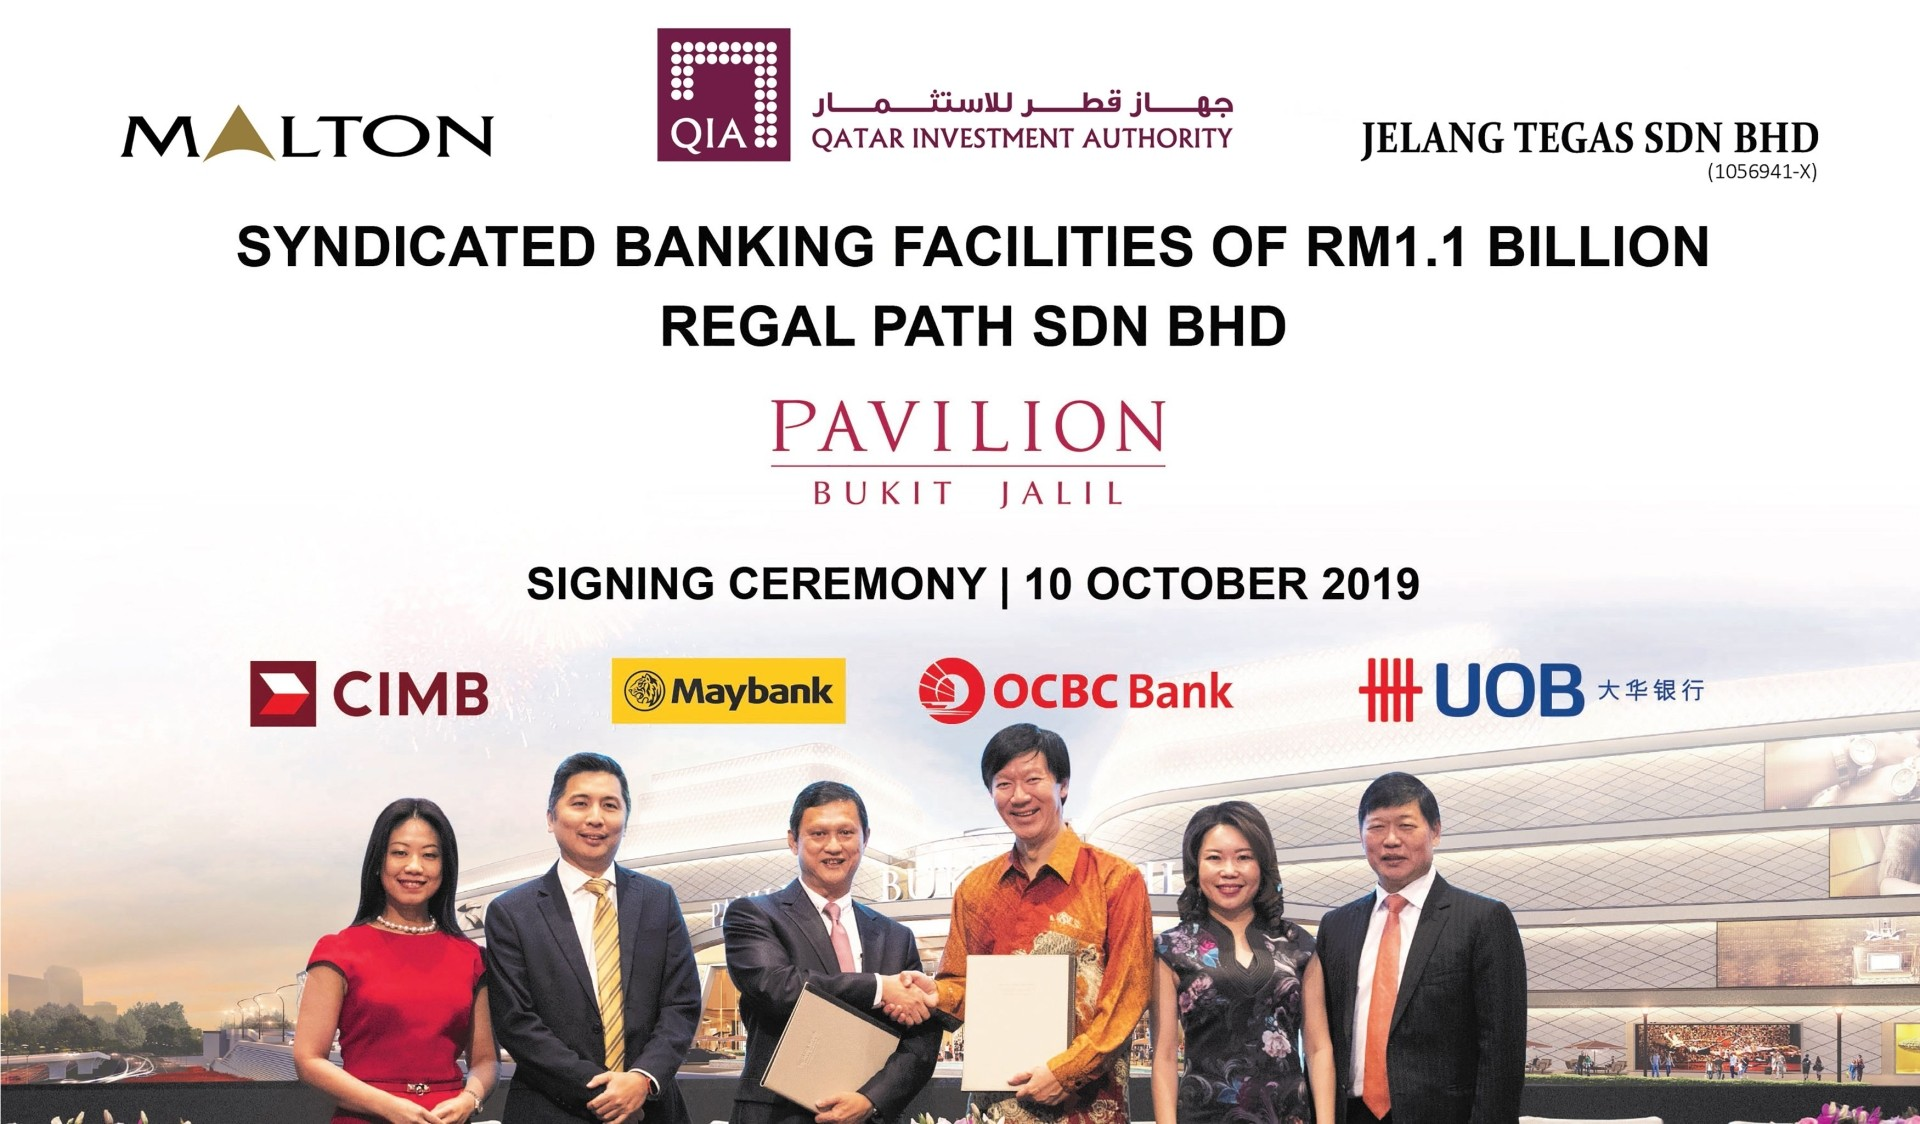 Done deal: Regal Path inked the facilities agreement with four banks to acquire Pavilion Bukit Jalil mall. (From left) UOB Bank (Malaysia) Berhad managing director Ng Wei Wei, Maybank managing director Michael Oh-Lau, Regal Path Sdn Bhd director Hong Lay Chuan, OCBC Bank (Malaysia) Berhad CEO Dato' Ong Eng Bin, OCBC Bank (Malaysia) Berhad managing director Tan Ai Chin and CIMB Bank Berhad group head corporate banking Lo Nyen Khing signing the agreement at Pavilion Hotel Kuala Lumpur.